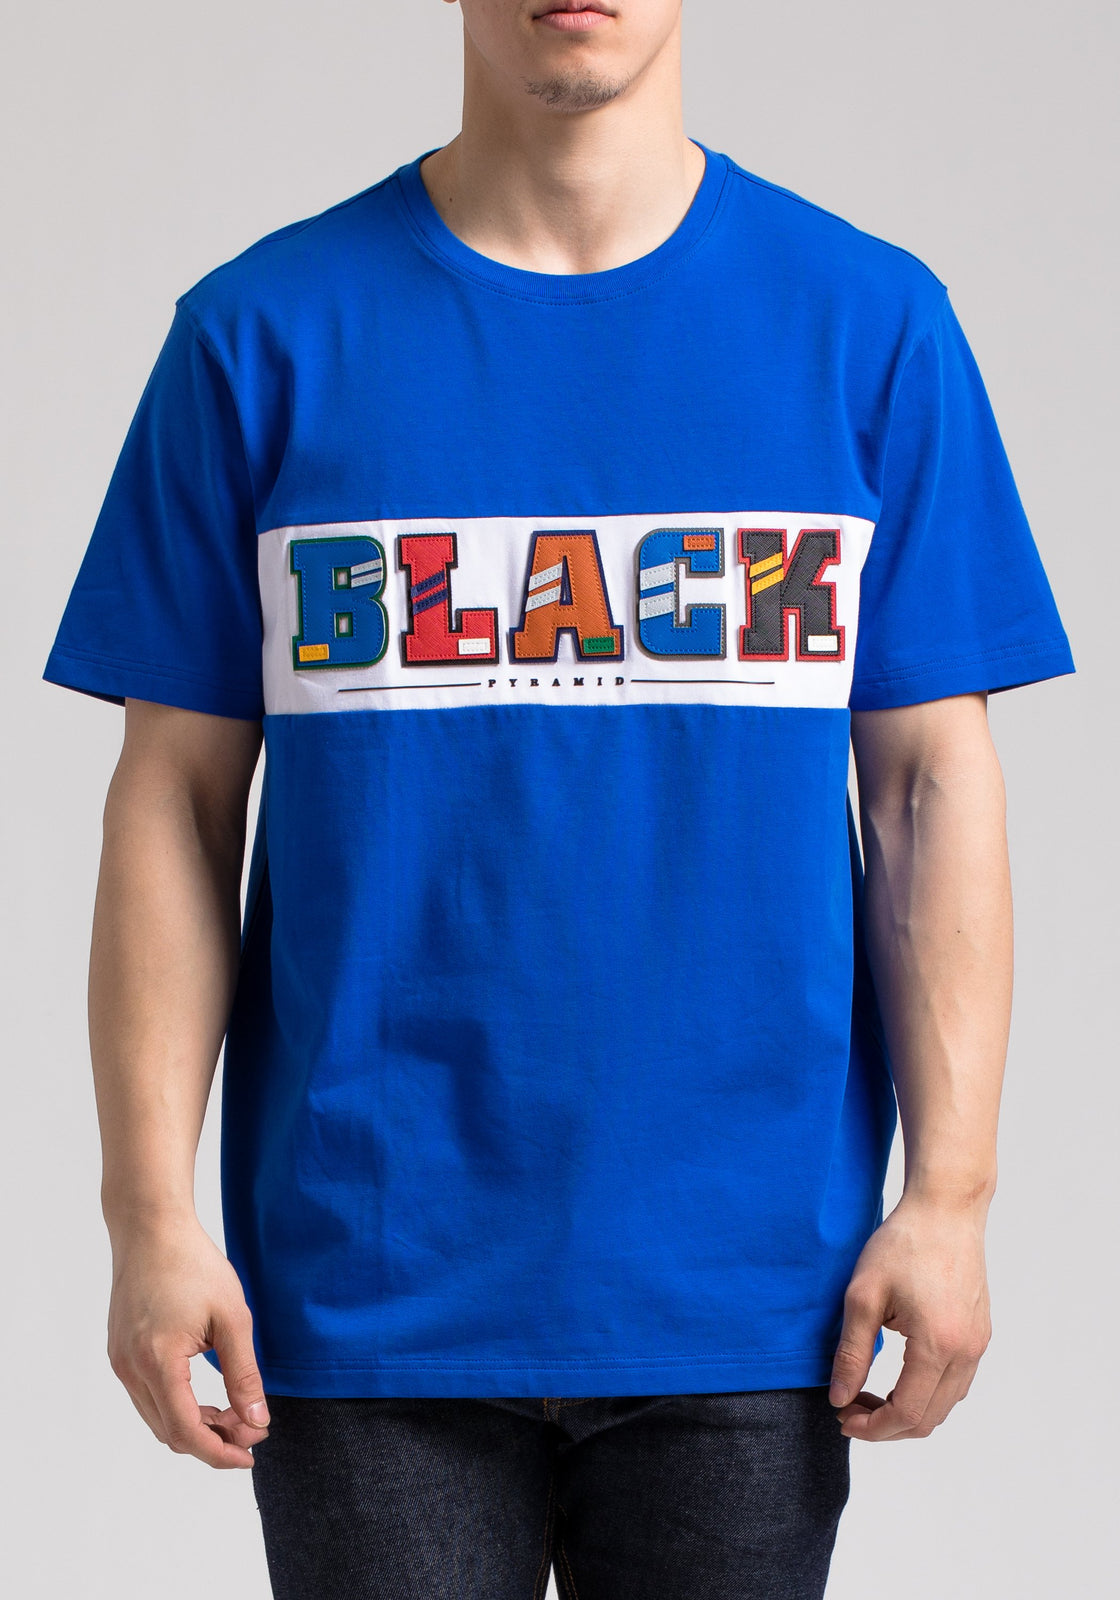 BP LETTERS SS SHIRT - Color: Blue